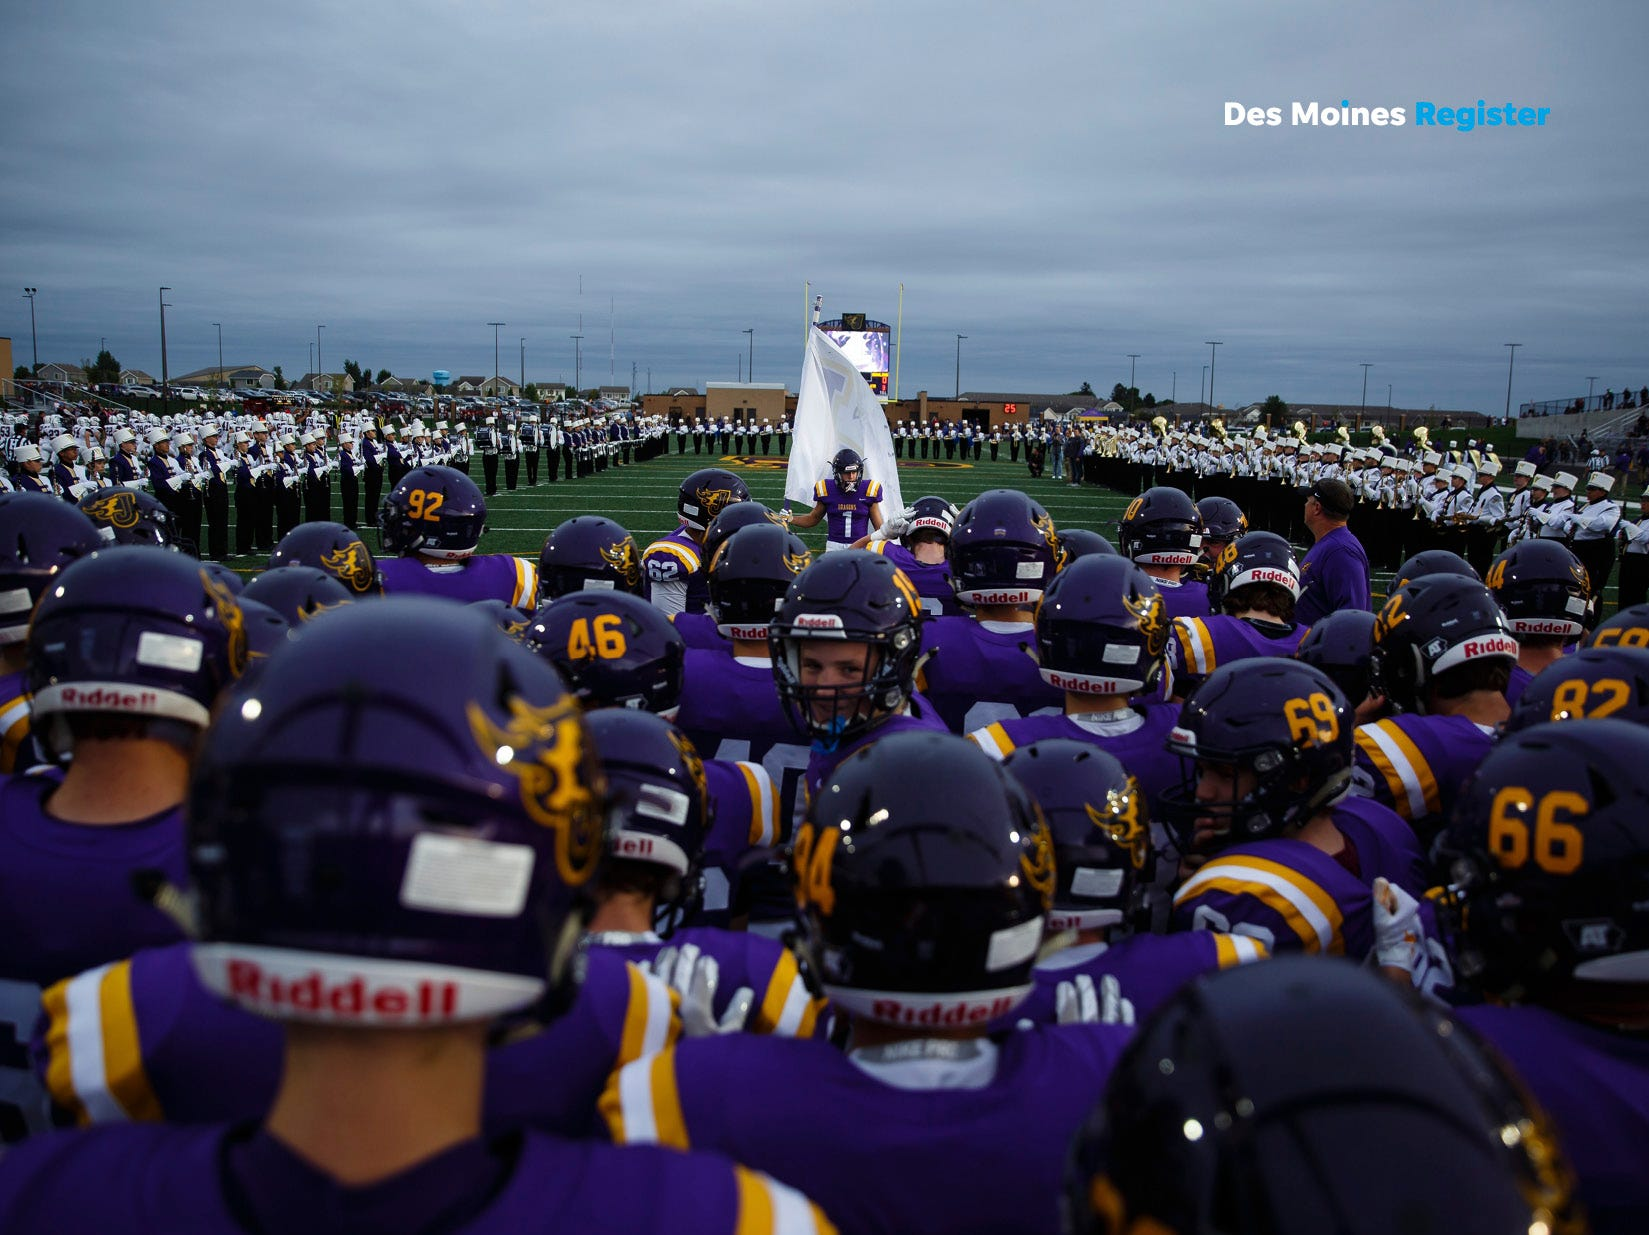 "<b>September: </b>The Johnston football team takes the field before a home game against Dowling Catholic. The Register's 2019 photo calendar is available for $18 at <a href=""https://shopdmregister.com/collections/photo-gifts/products/2019-des-moines-register-photo-calendar?utm_source=desmoinesregister&utm_medium=link&utm_campaign=launch_gallery"" target=""_blank"">ShopDMRegister.com. </a>"